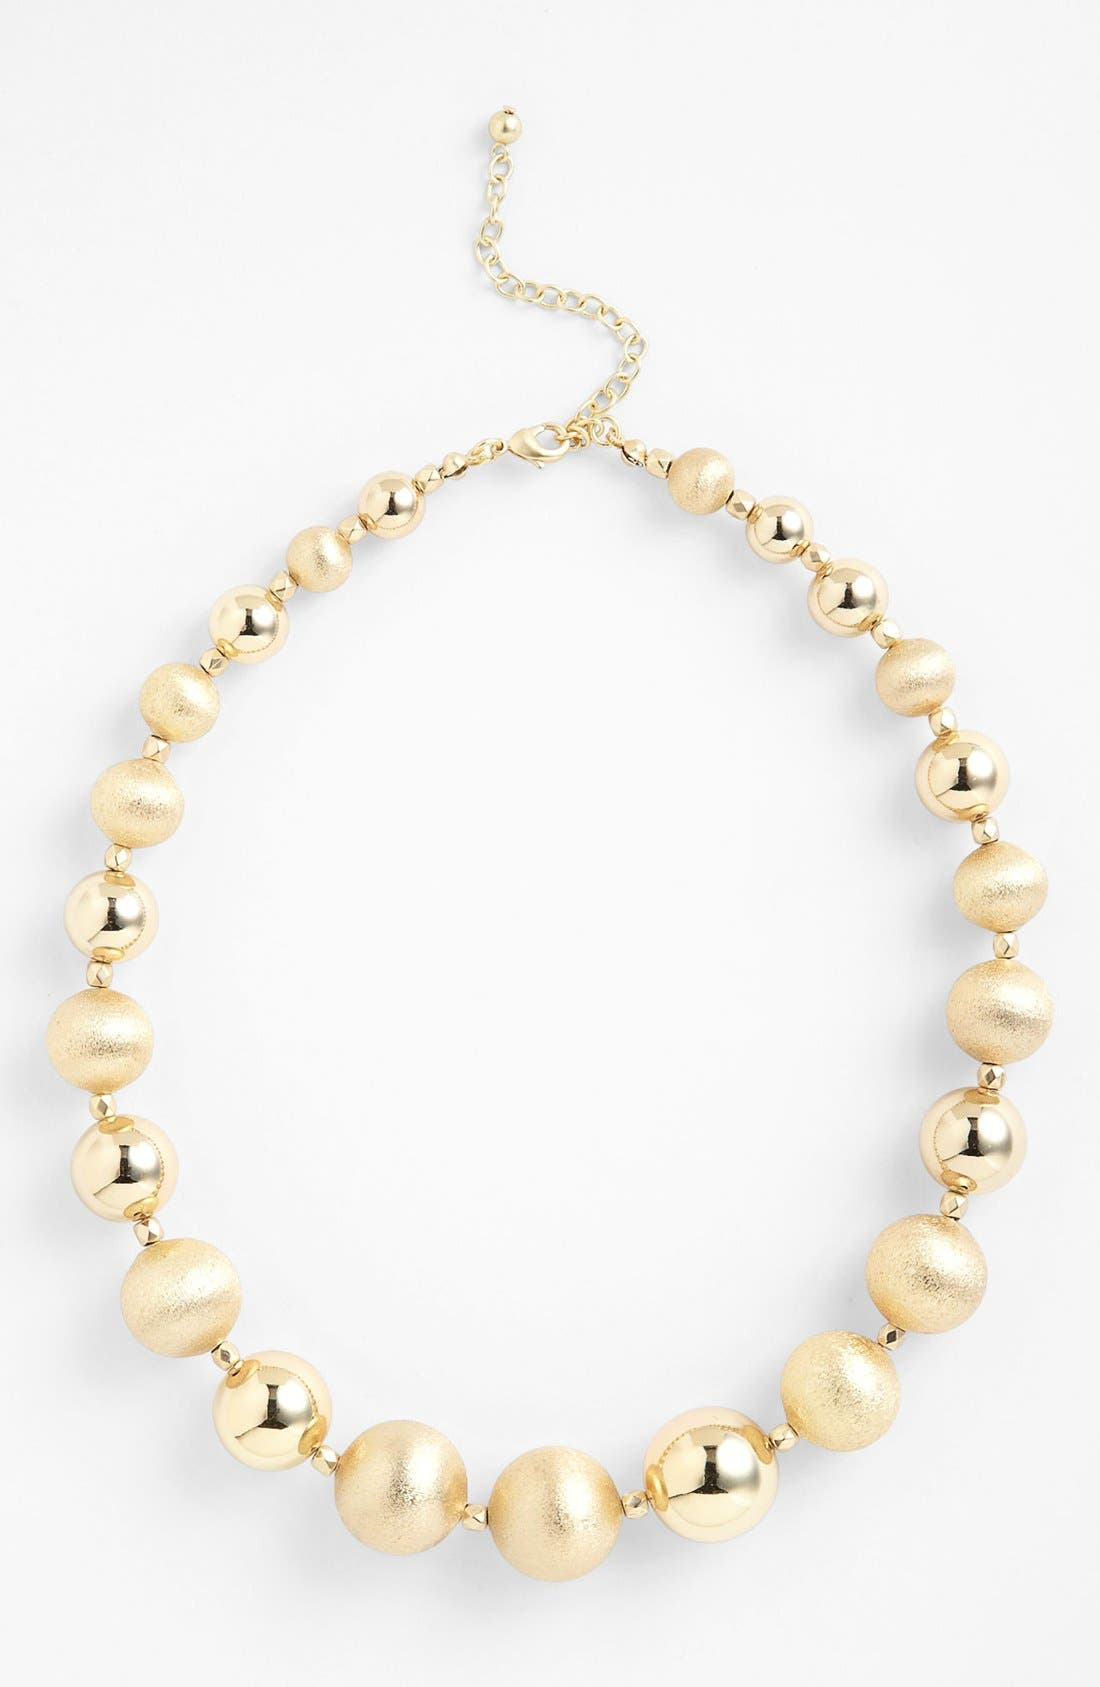 Main Image - Nordstrom 'Pebble Beach' Beaded Necklace